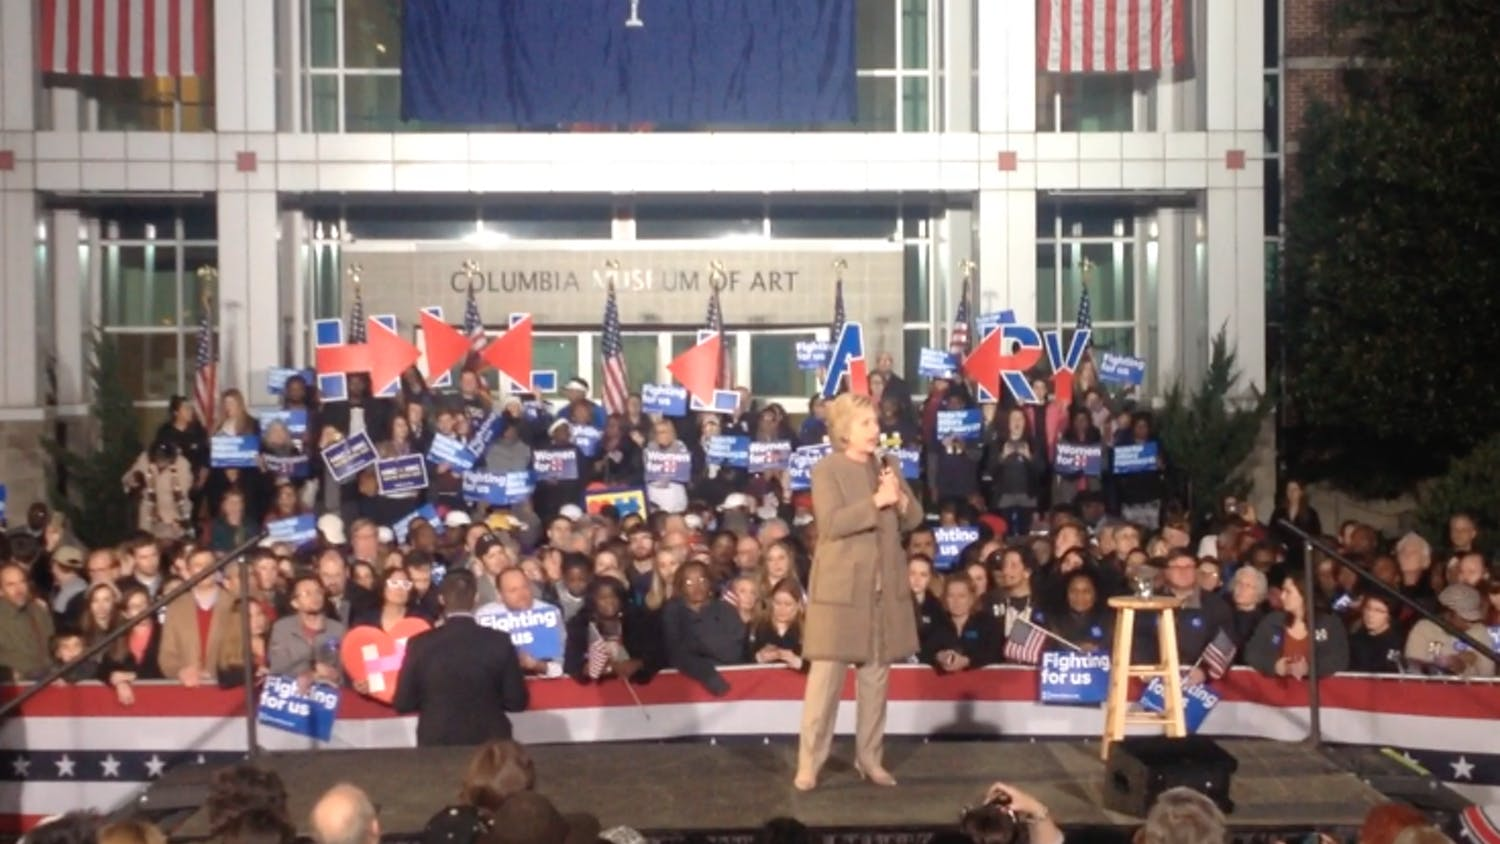 Hillary Clinton campaigned Friday night in downtown Columbia at Boyd Plaza ahead of Saturday's Democratic presidential primary.